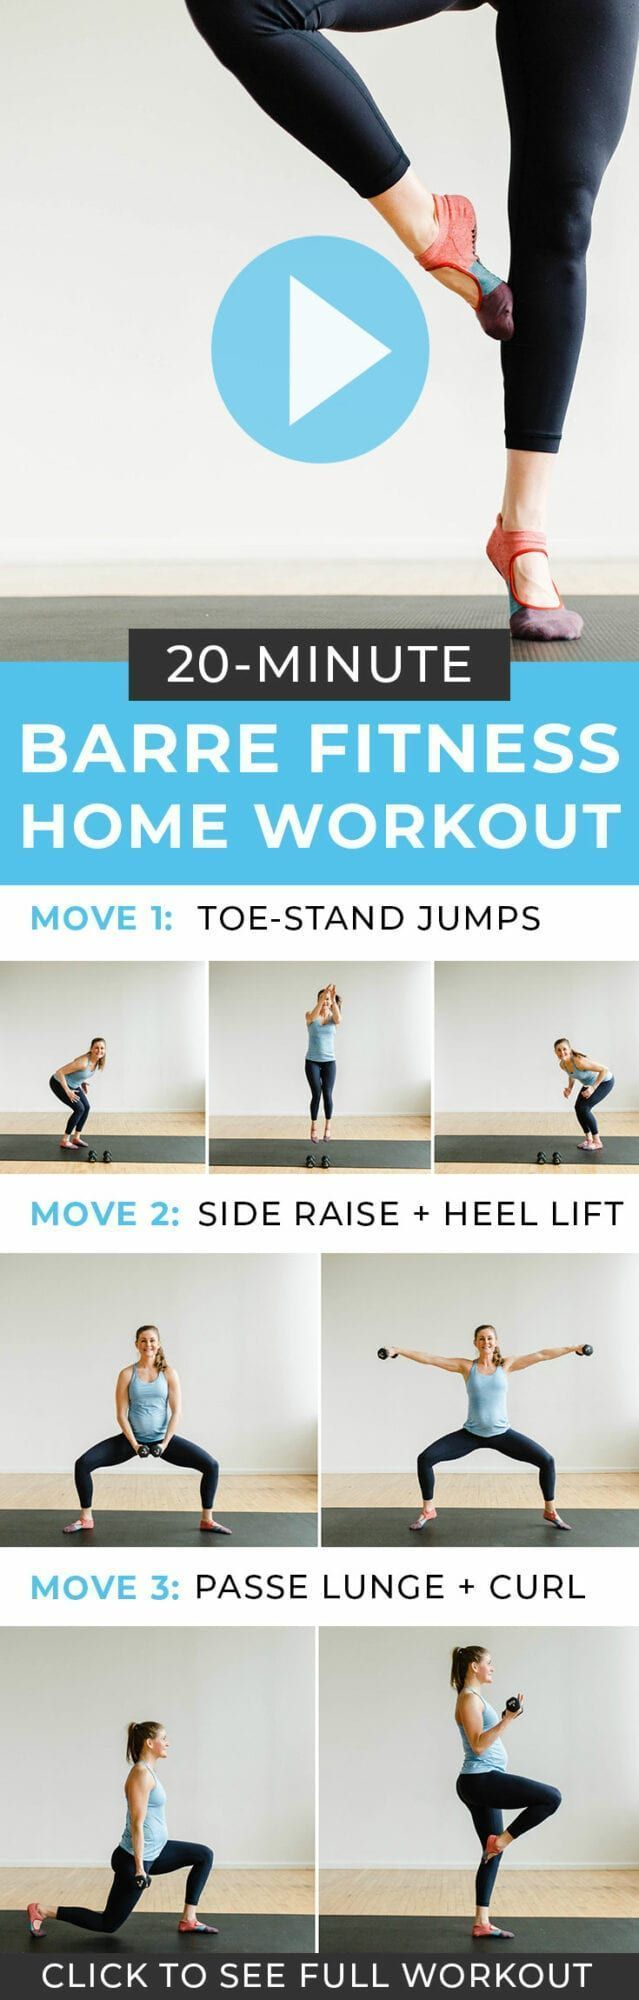 20-Minute Barre Class At Home Workout Video  #20Minute #Barre #Class #home #stu #BeautyBlog #MakeupOfTheDay #MakeupByMe #MakeupLife #MakeupTutorial #InstaMakeup #MakeupLover #Cosmetics #BeautyBasics #MakeupJunkie #InstaBeauty #ILoveMakeup #WakeUpAndMakeup #MakeupGuru #BeautyProducts #cardiobarre 20-Minute Barre Class At Home Workout Video  #20Minute #Barre #Class #home #stu #BeautyBlog #MakeupOfTheDay #MakeupByMe #MakeupLife #MakeupTutorial #InstaMakeup #MakeupLover #Cosmetics #BeautyBasics #Mak #cardiobarre